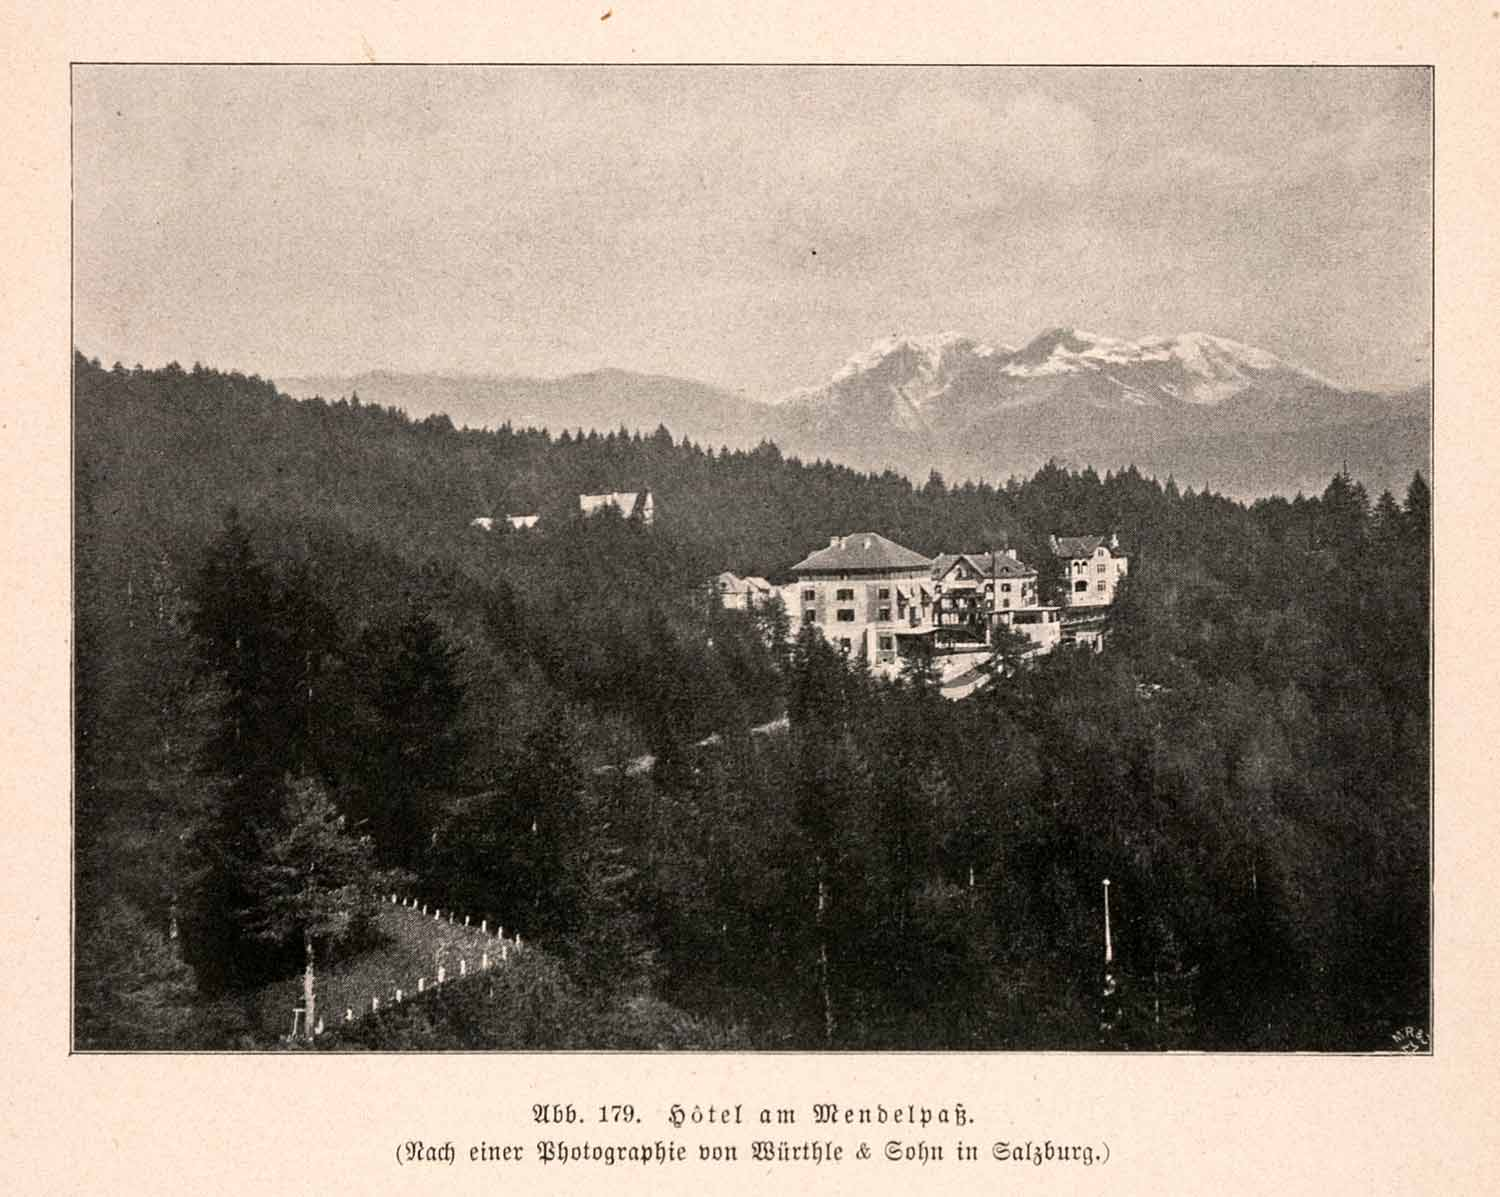 1899 Print Hotel Mendelpass South Tyrol Italy Trentino Alps Forest Lodge XGDA3